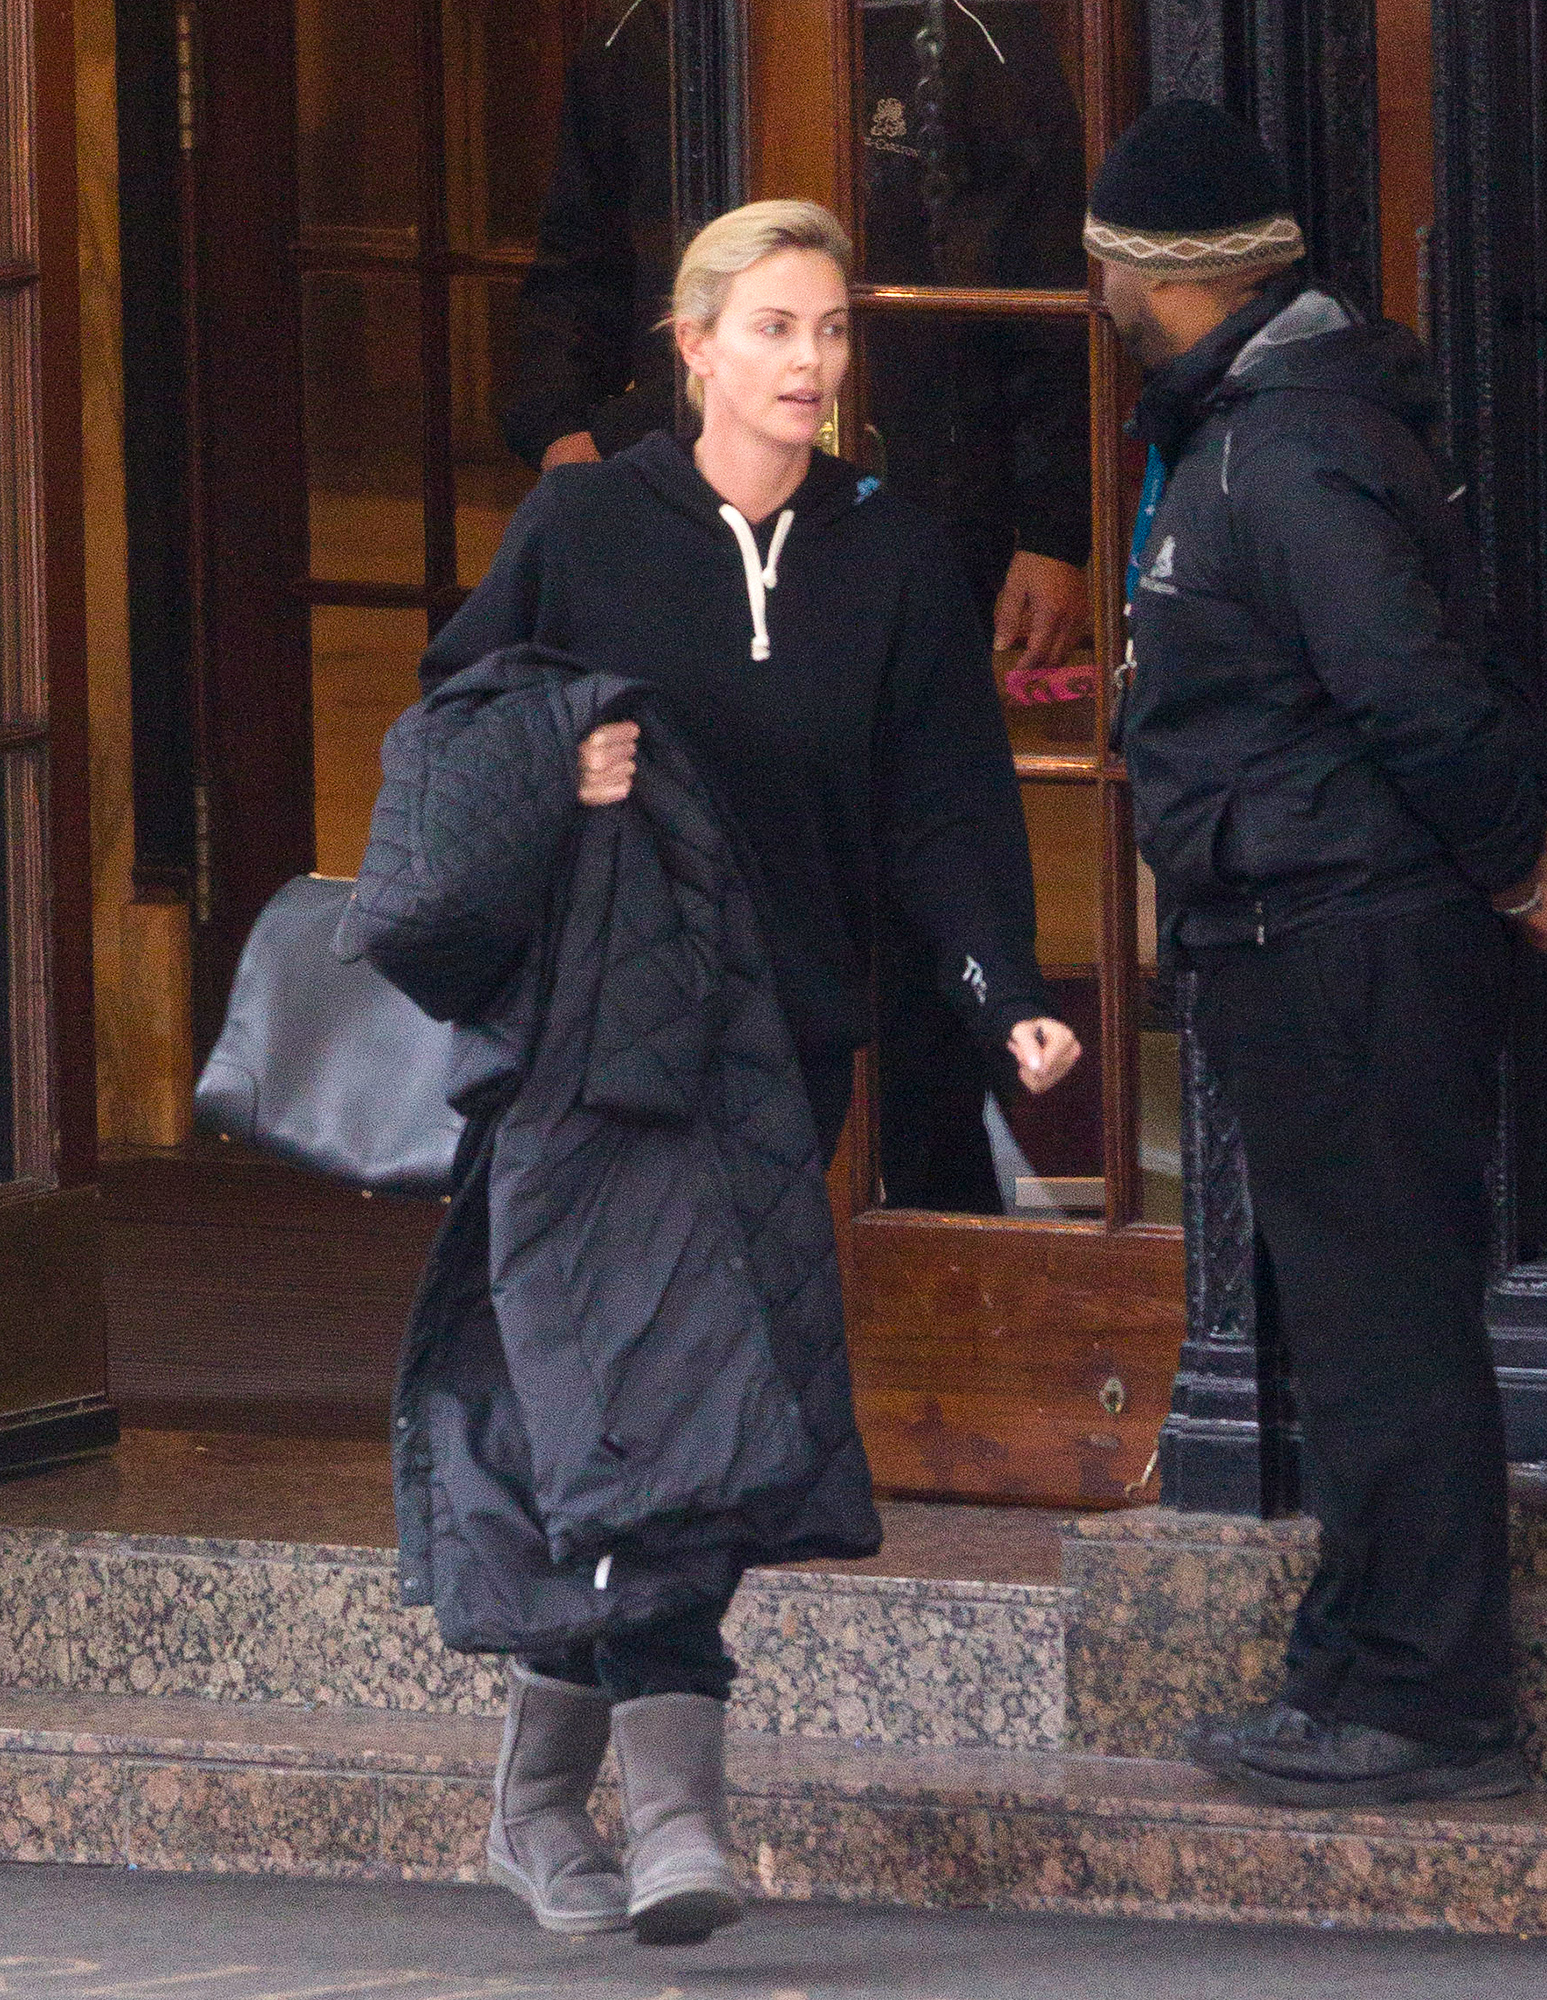 EXCLUSIVE: Charlize Theron is Spotted Makeup Free Leaving a Montreal Hotel